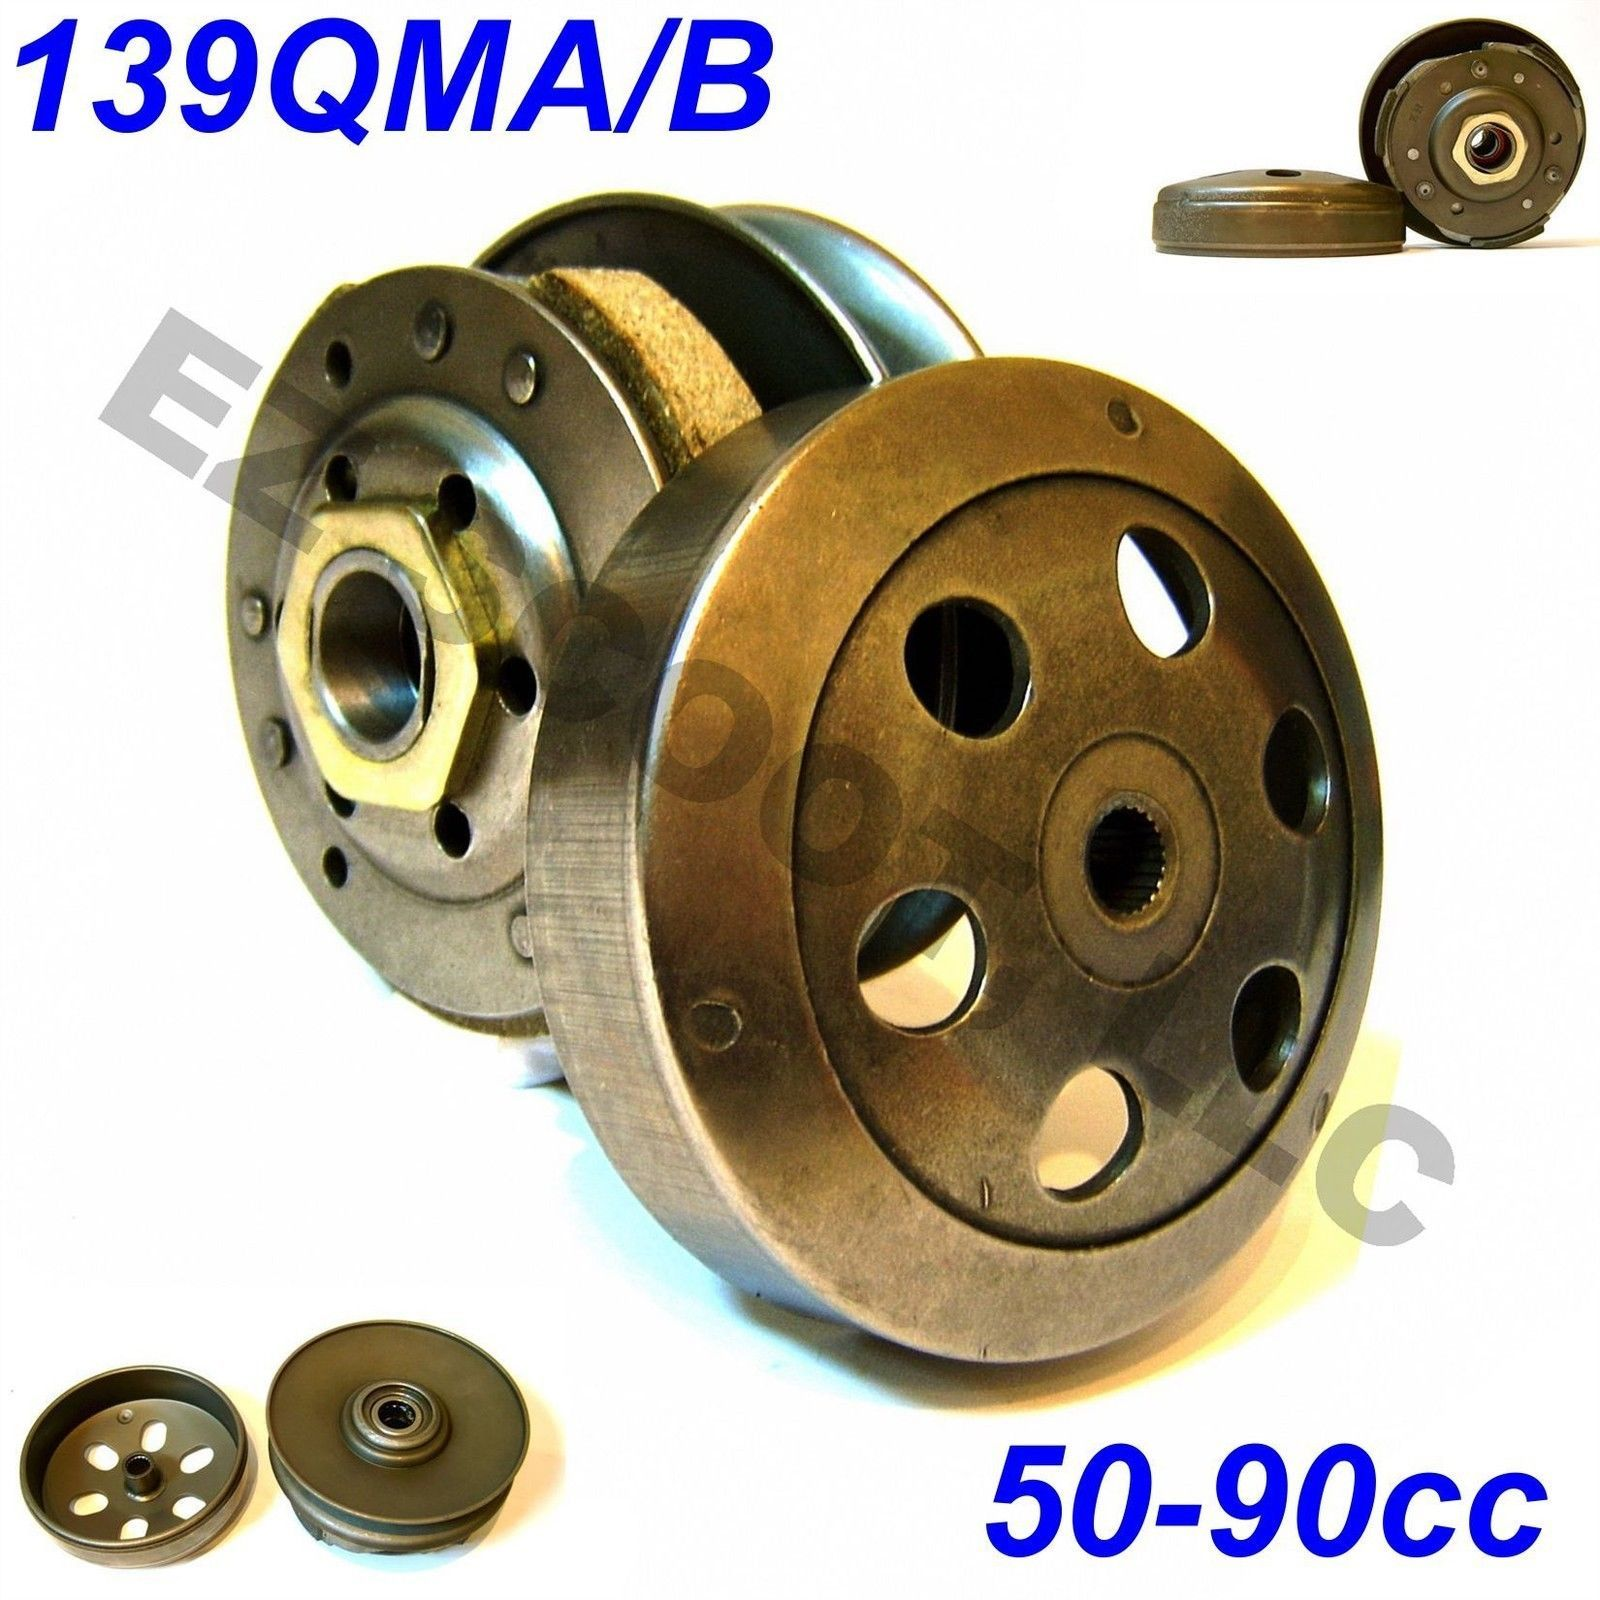 Details about Rear CLUTCH for 50cc-80cc chinese SCOOTER